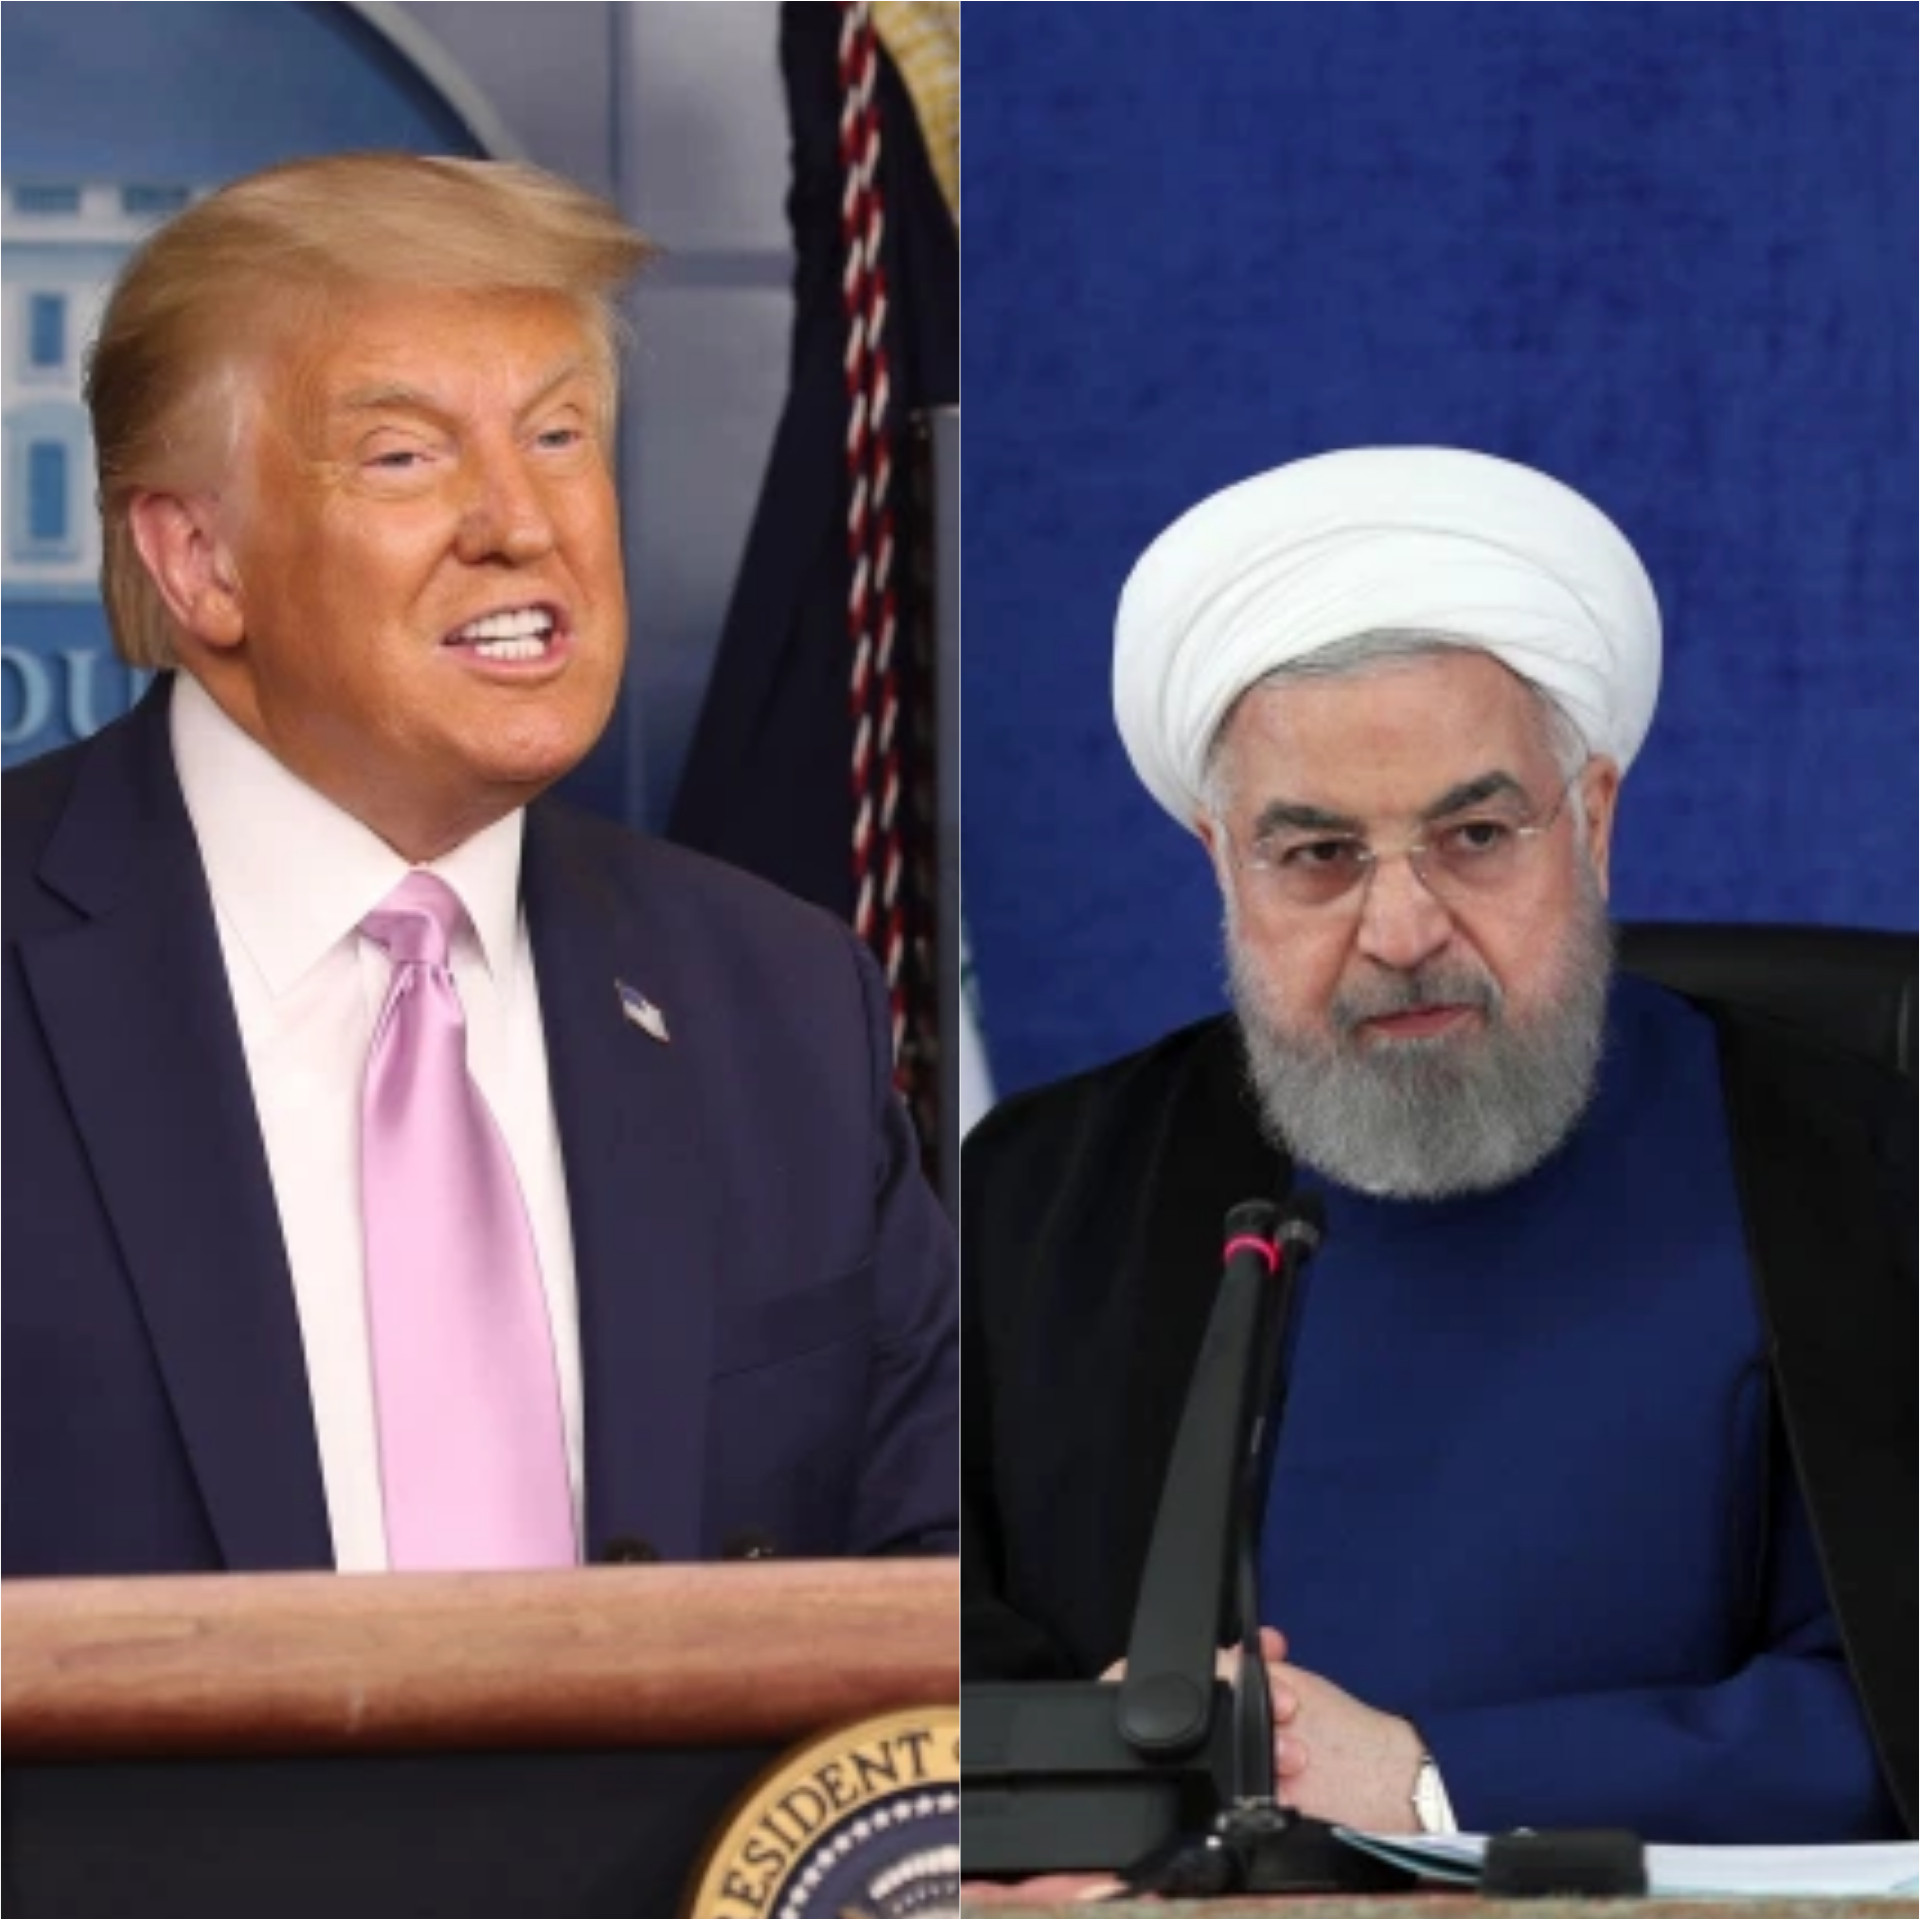 ?Iran will never have a nuclear weapon?- Trump demands reinstatement of all suspended UN sanctions on Iran